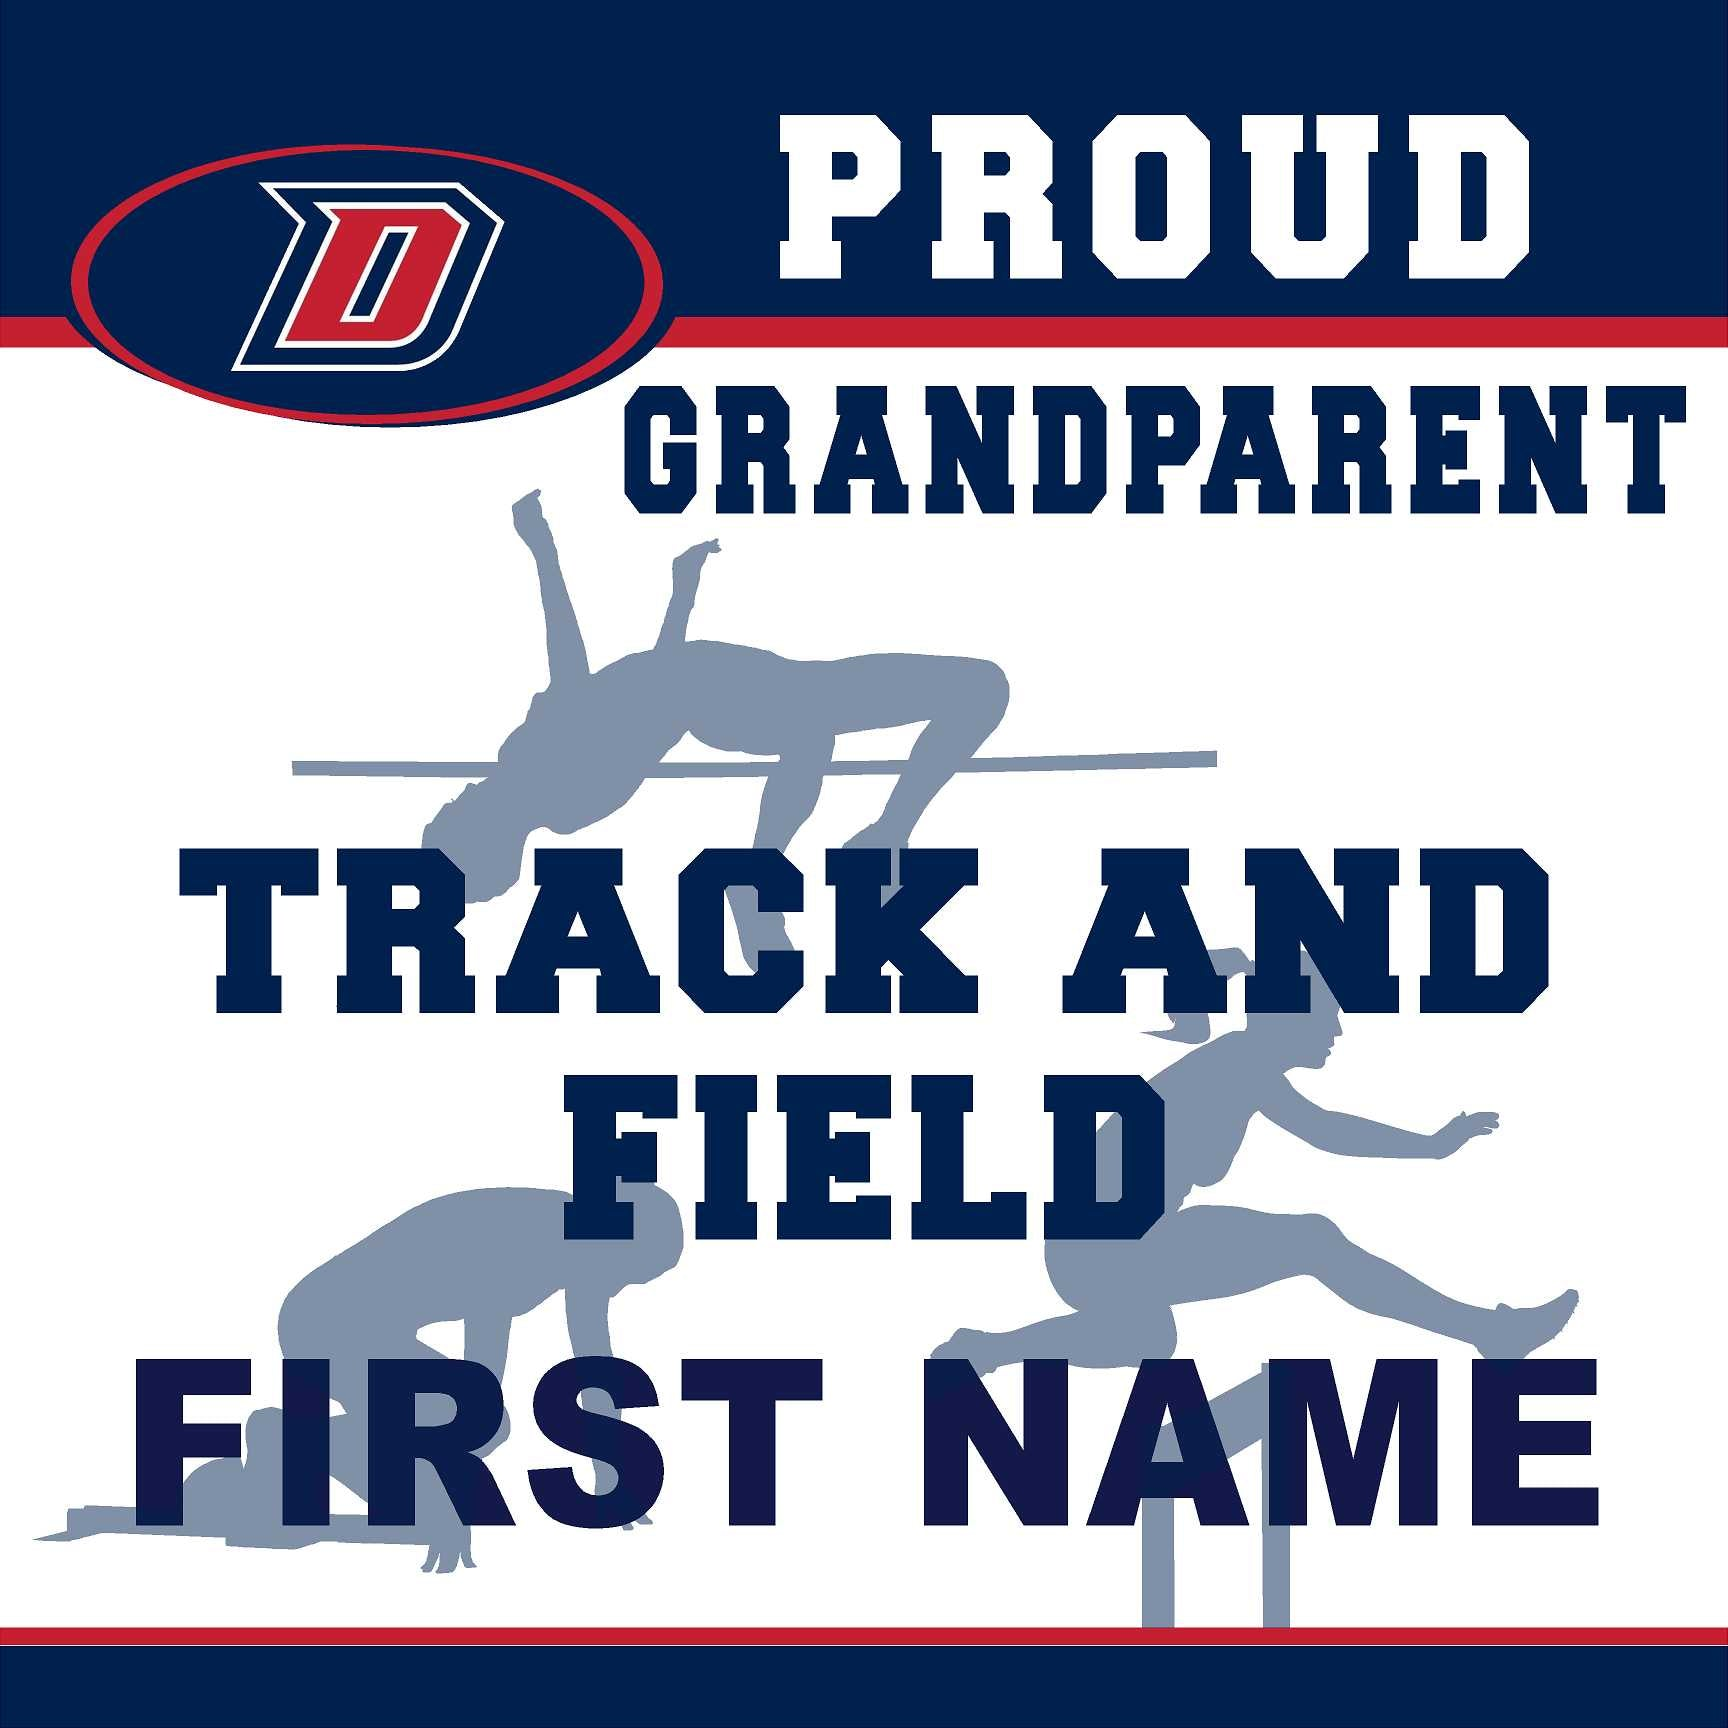 Dublin High School Track and Field (Grandparent) 24x24 Yard Sign (includes installation in your yard)